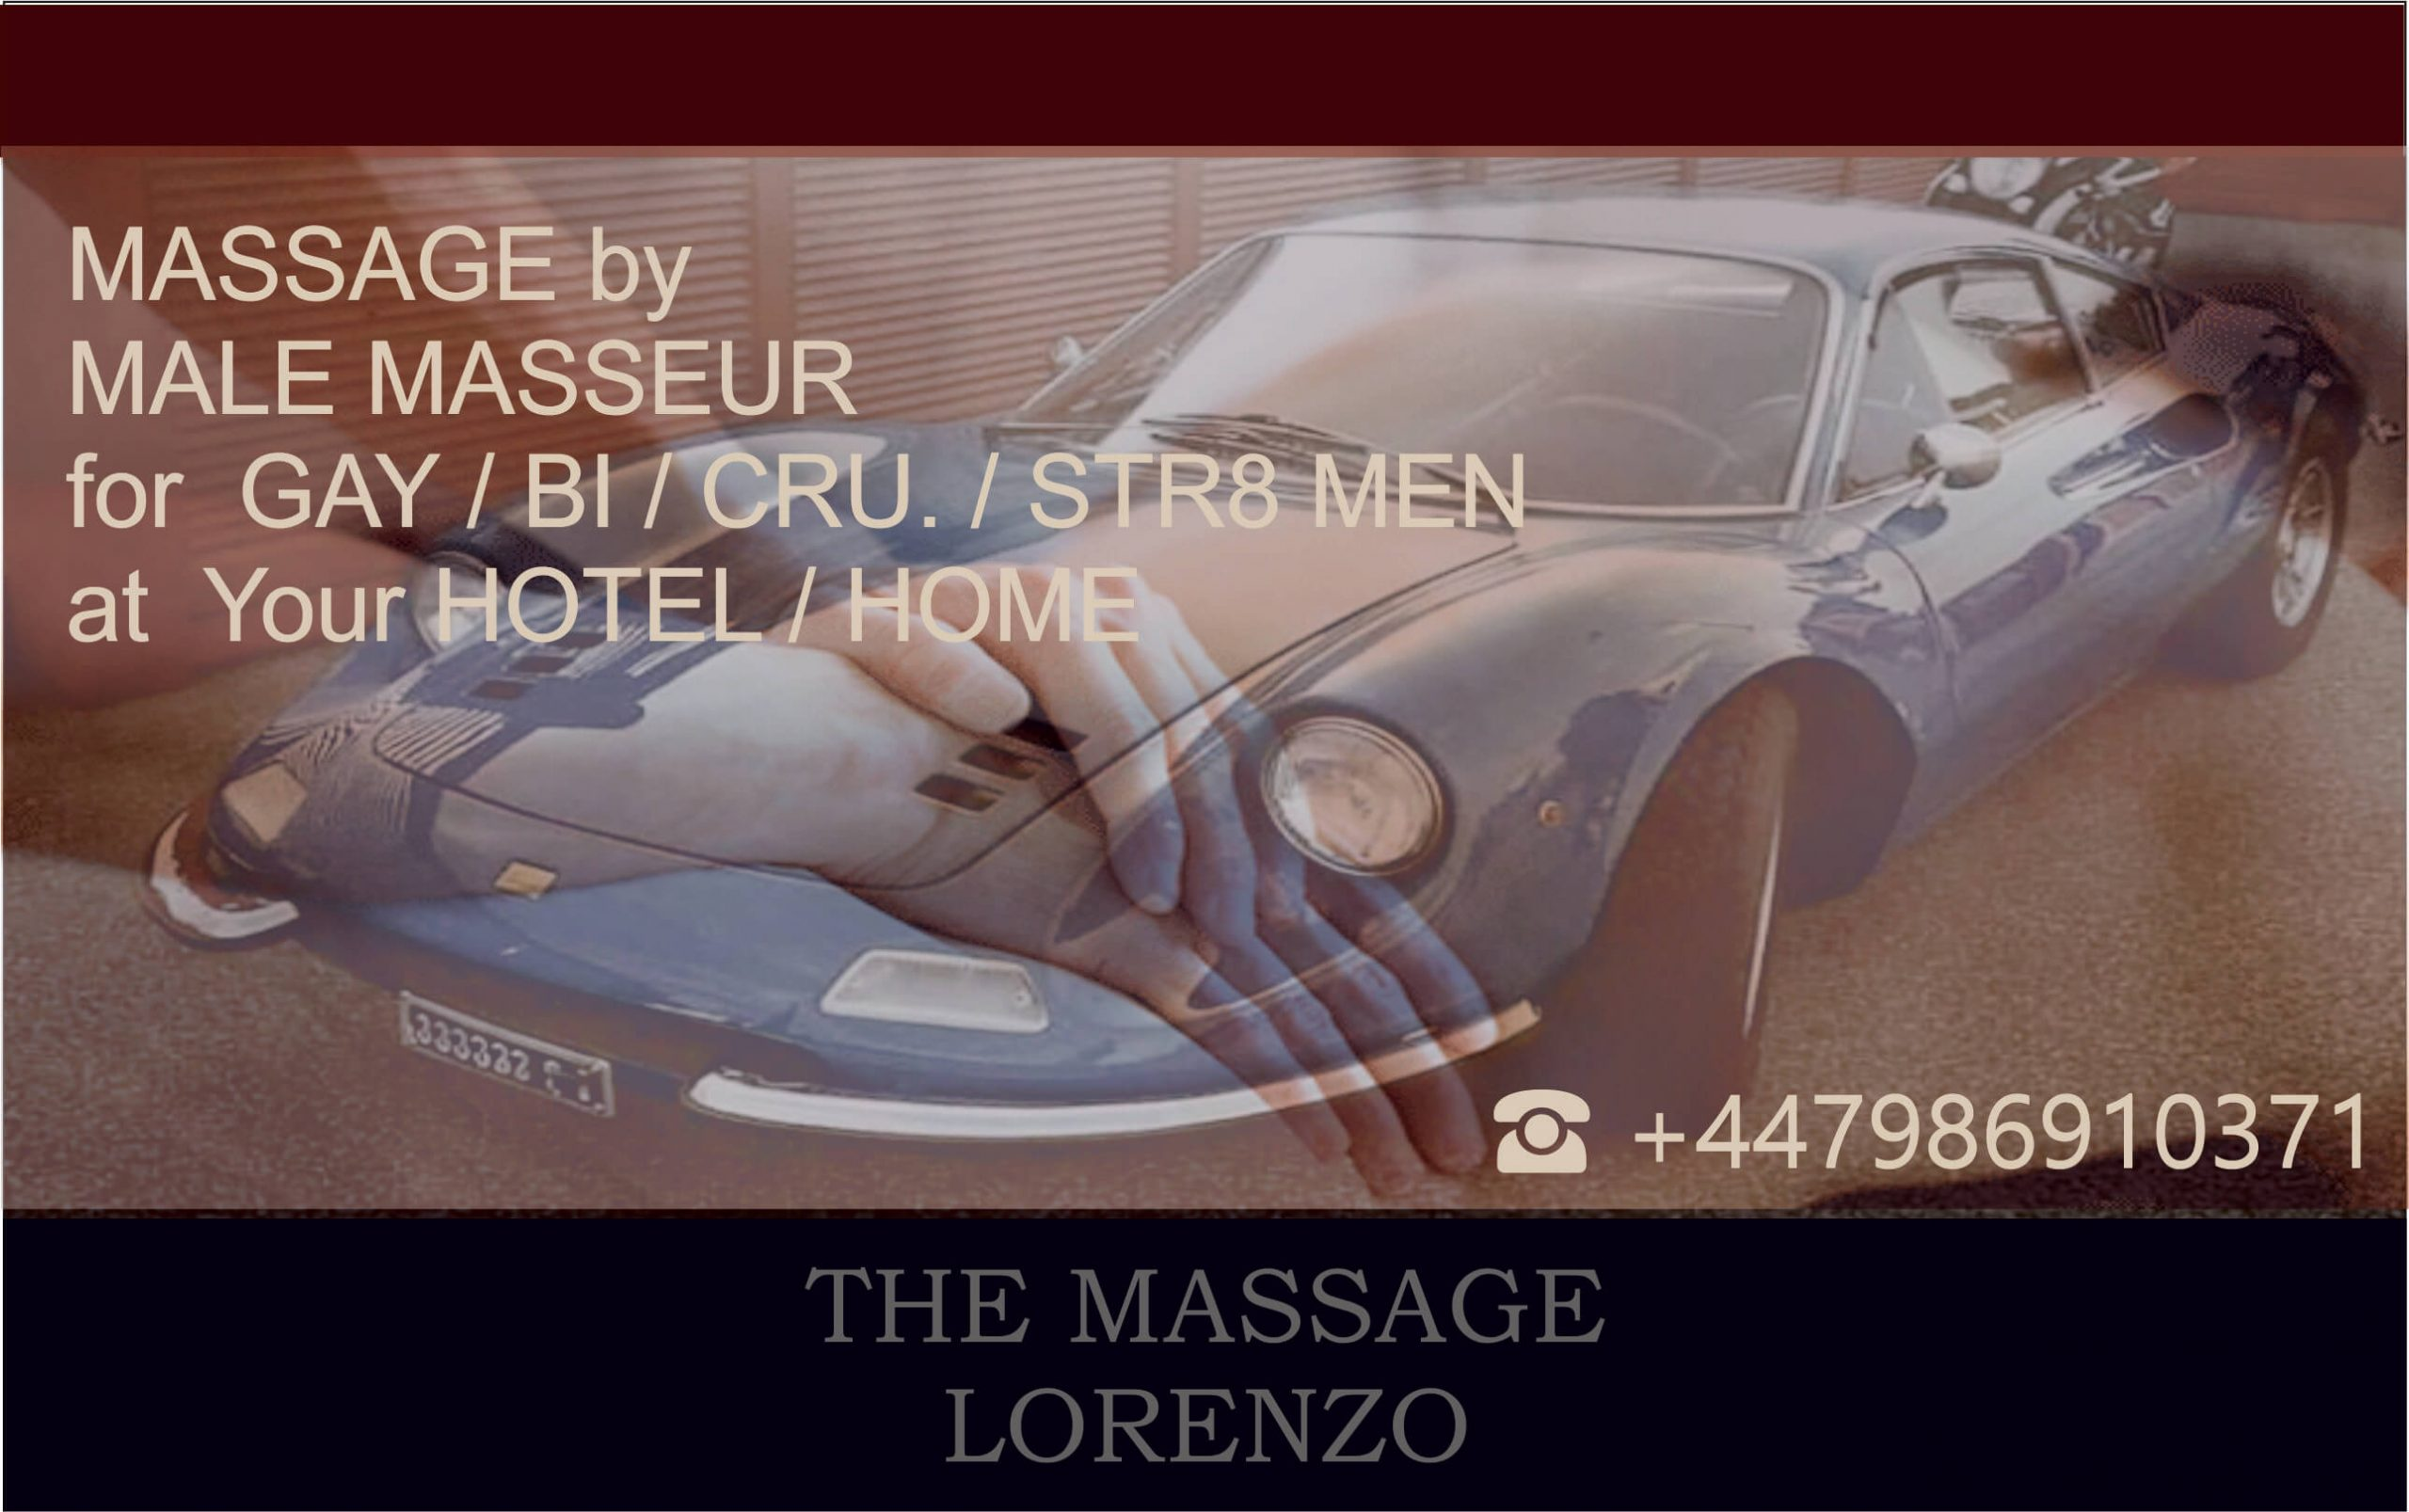 male massage london gay massage london male massage gay massage male to male massage best male massage full body massage male urban massage massage london male massage (12)